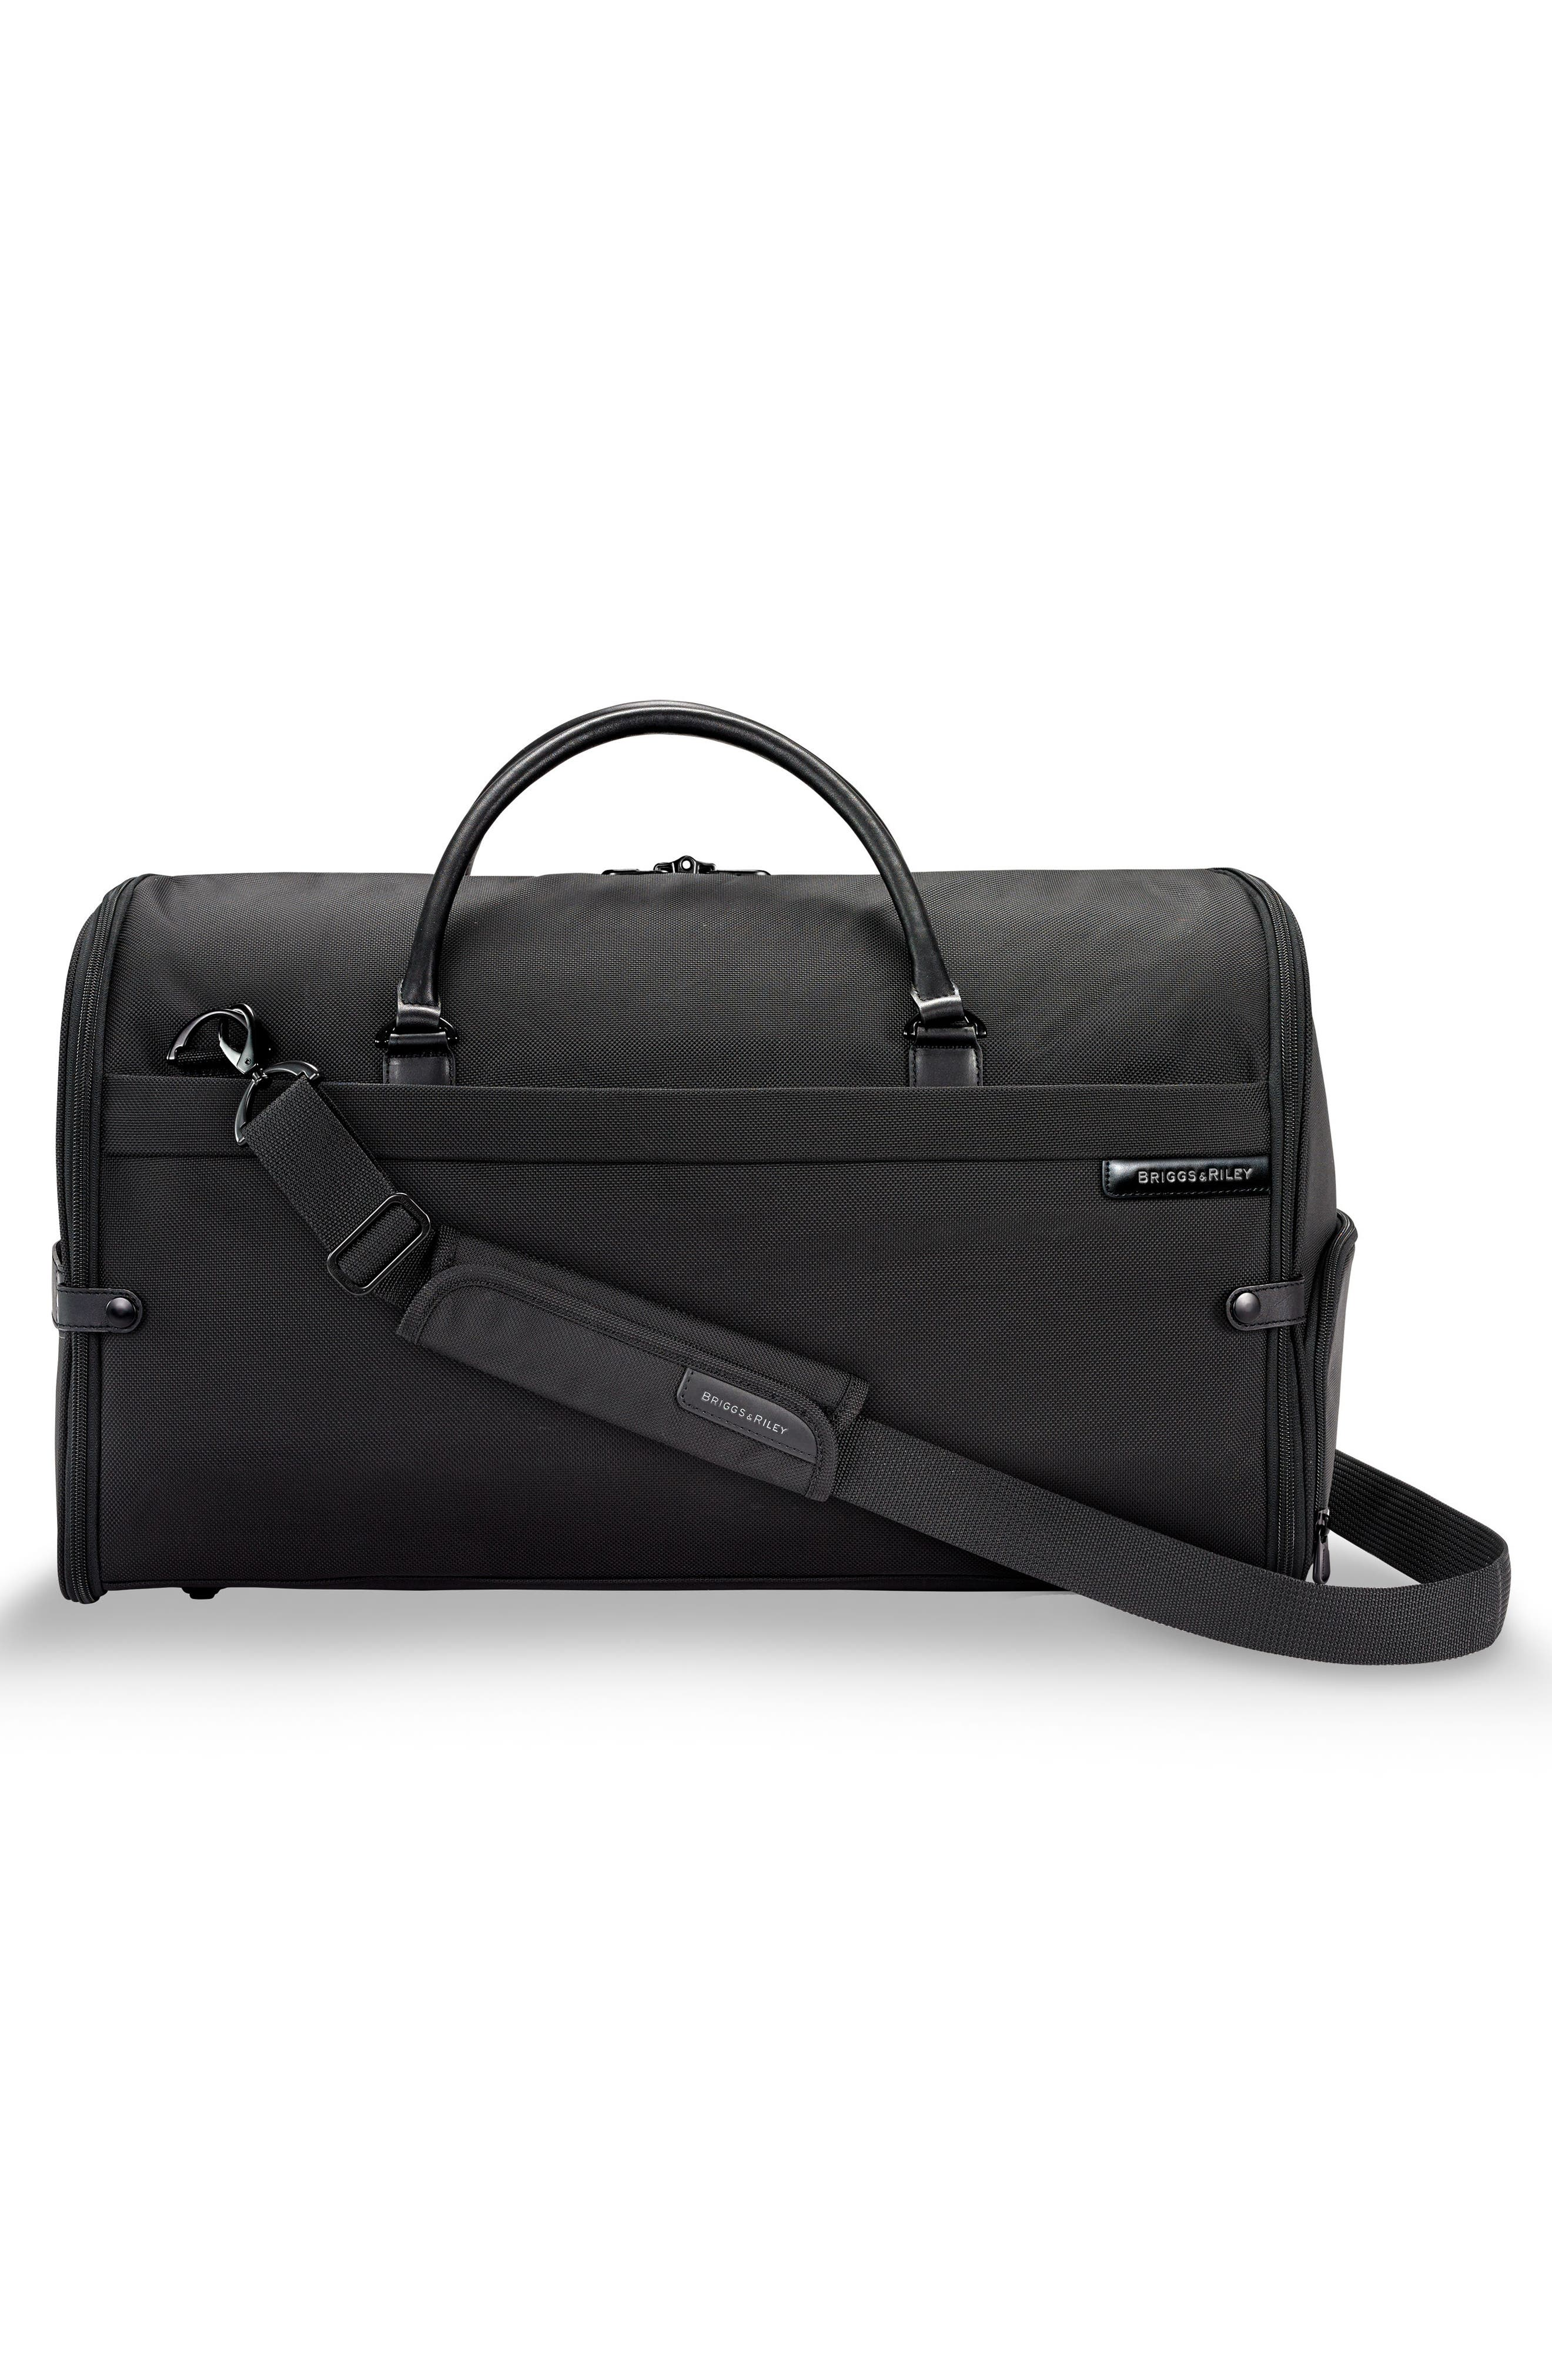 BRIGGS & RILEY, Baseline Suiter Duffle Bag, Alternate thumbnail 3, color, BLACK